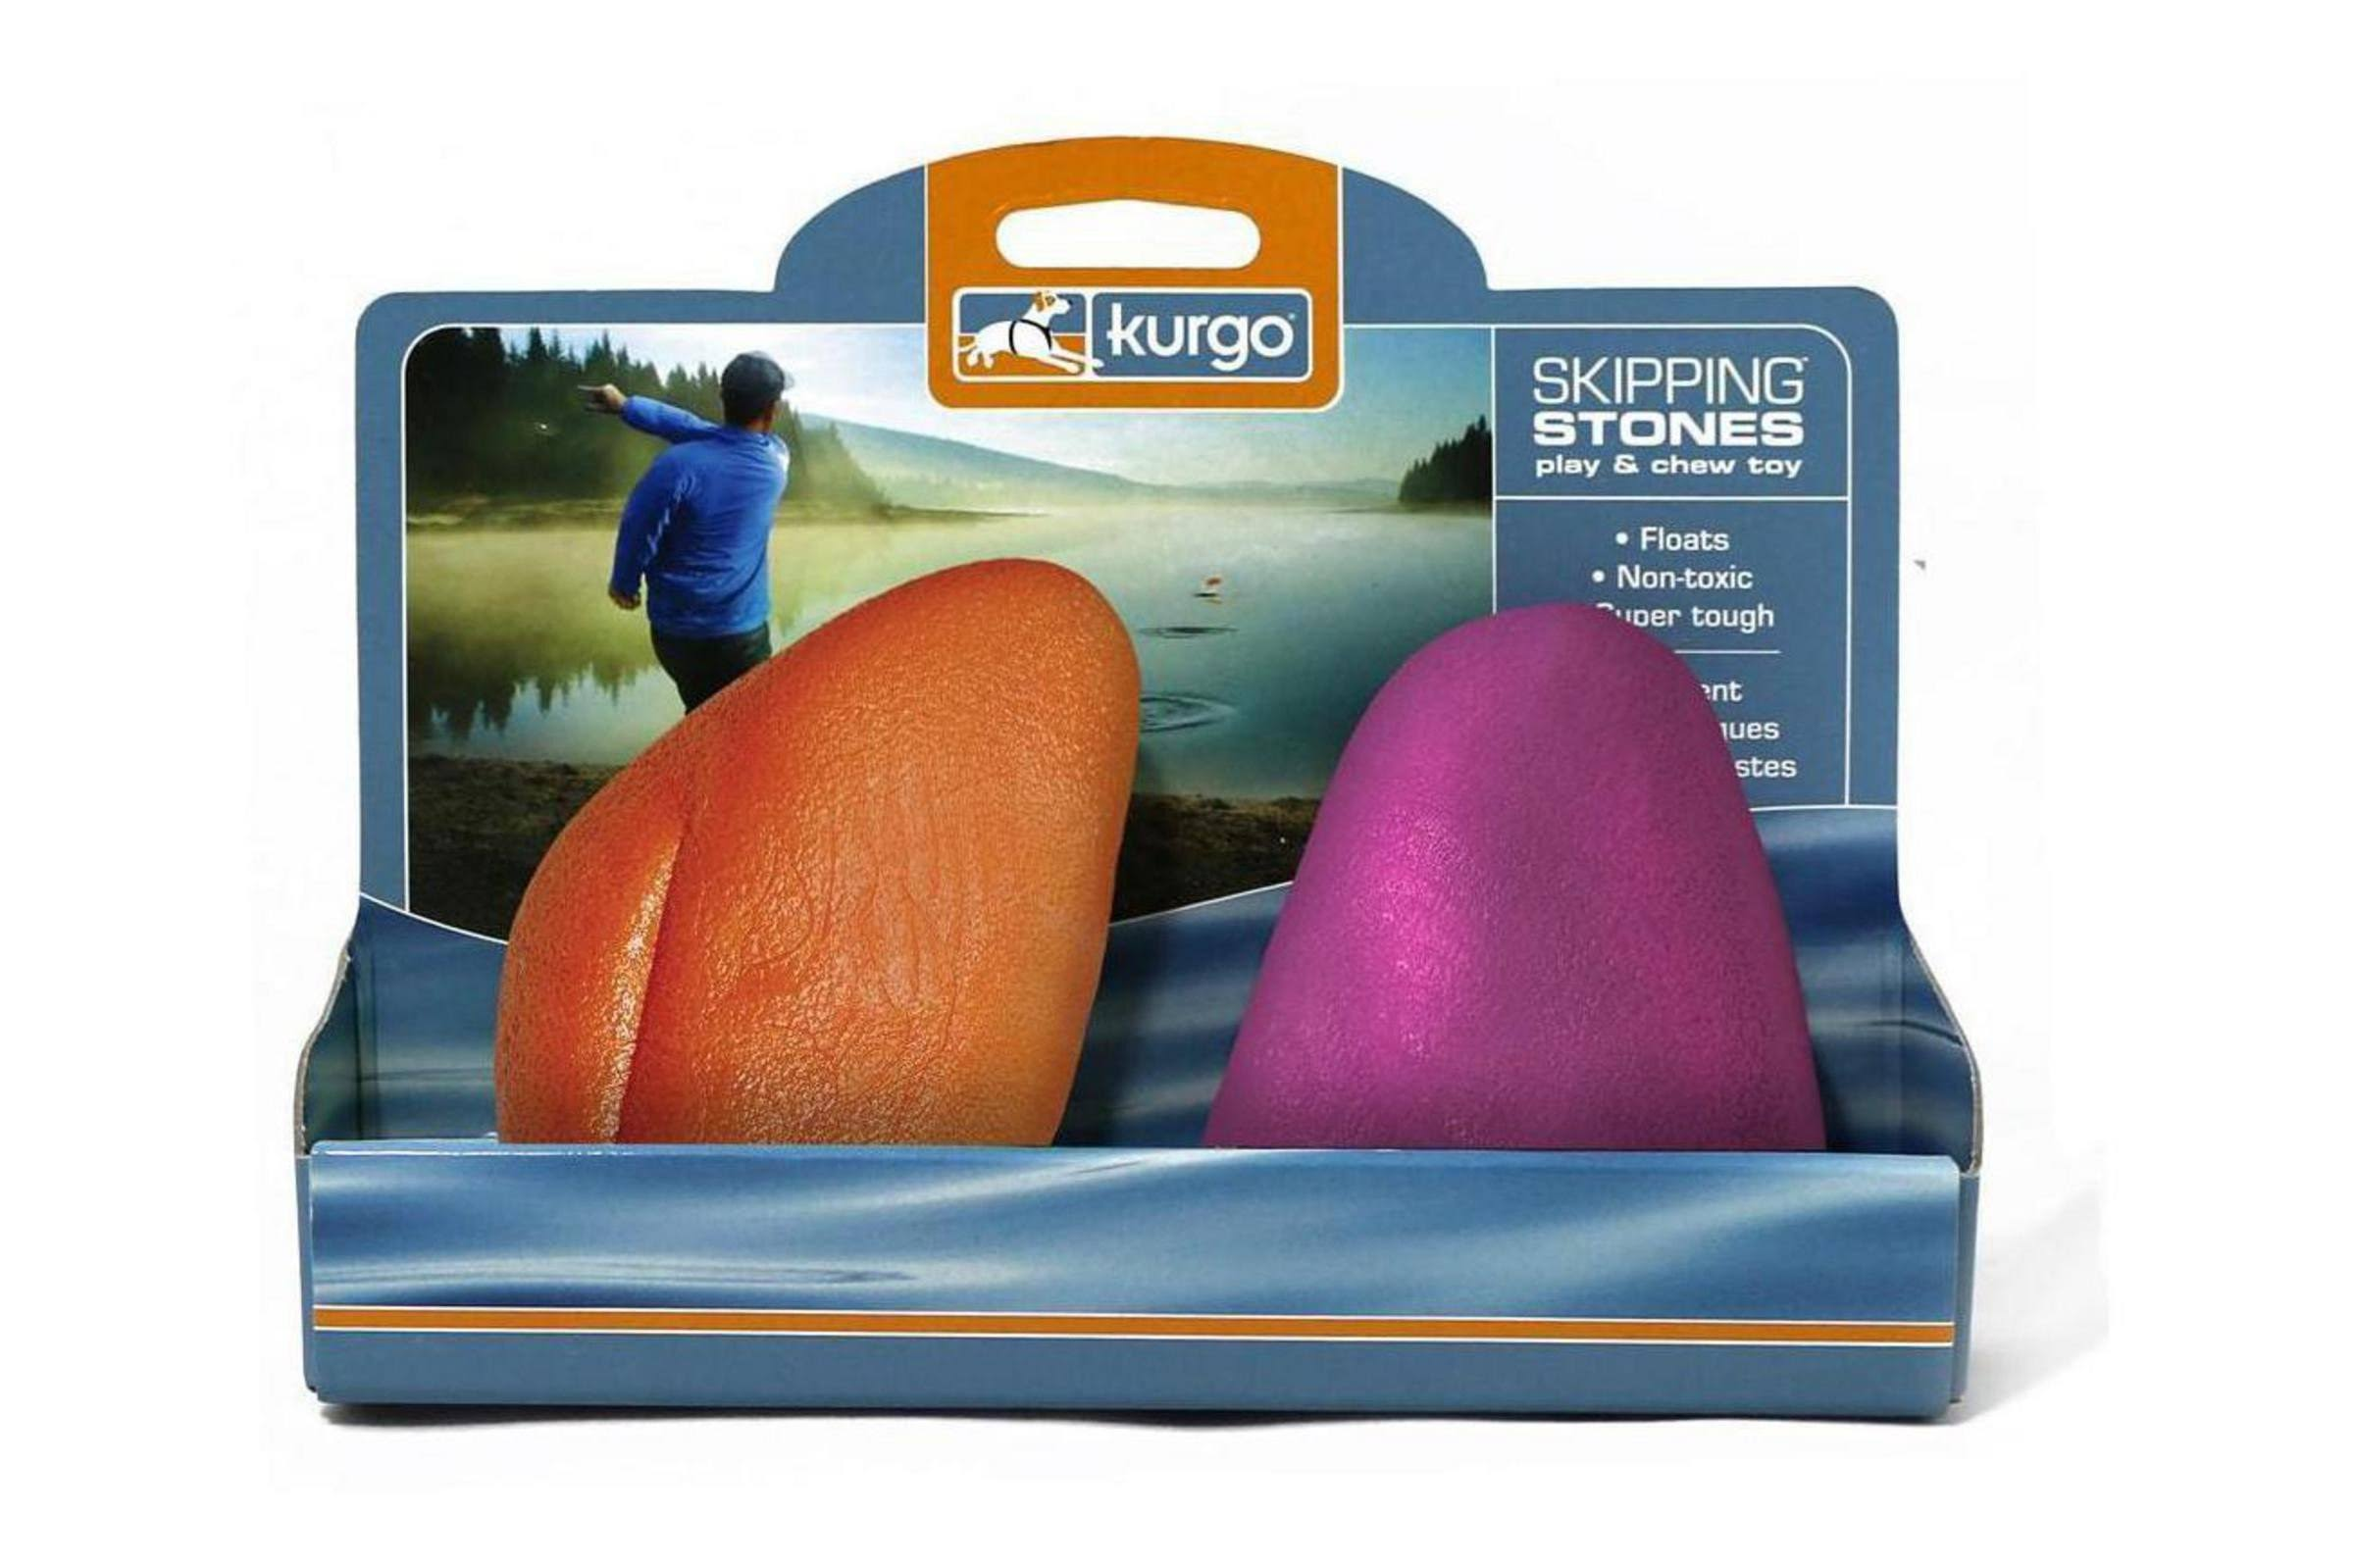 Kurgo Dog Skipping Stones, Assorted Colors